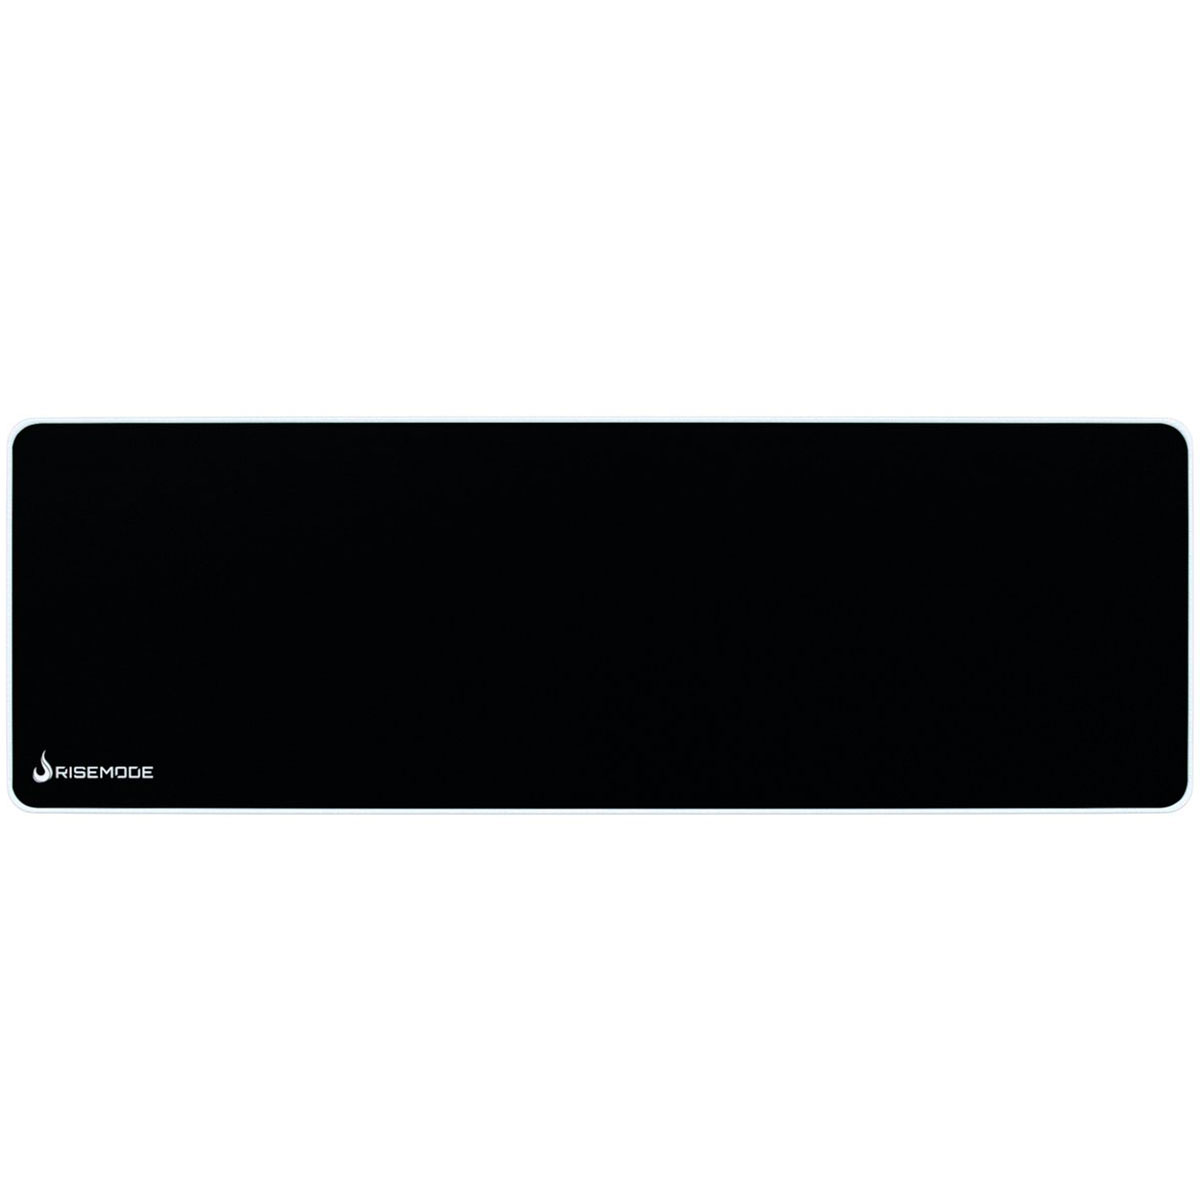 Mouse Pad Gamer Rise Mode Zero Costura Branca - Extended RG-MP-06-ZW